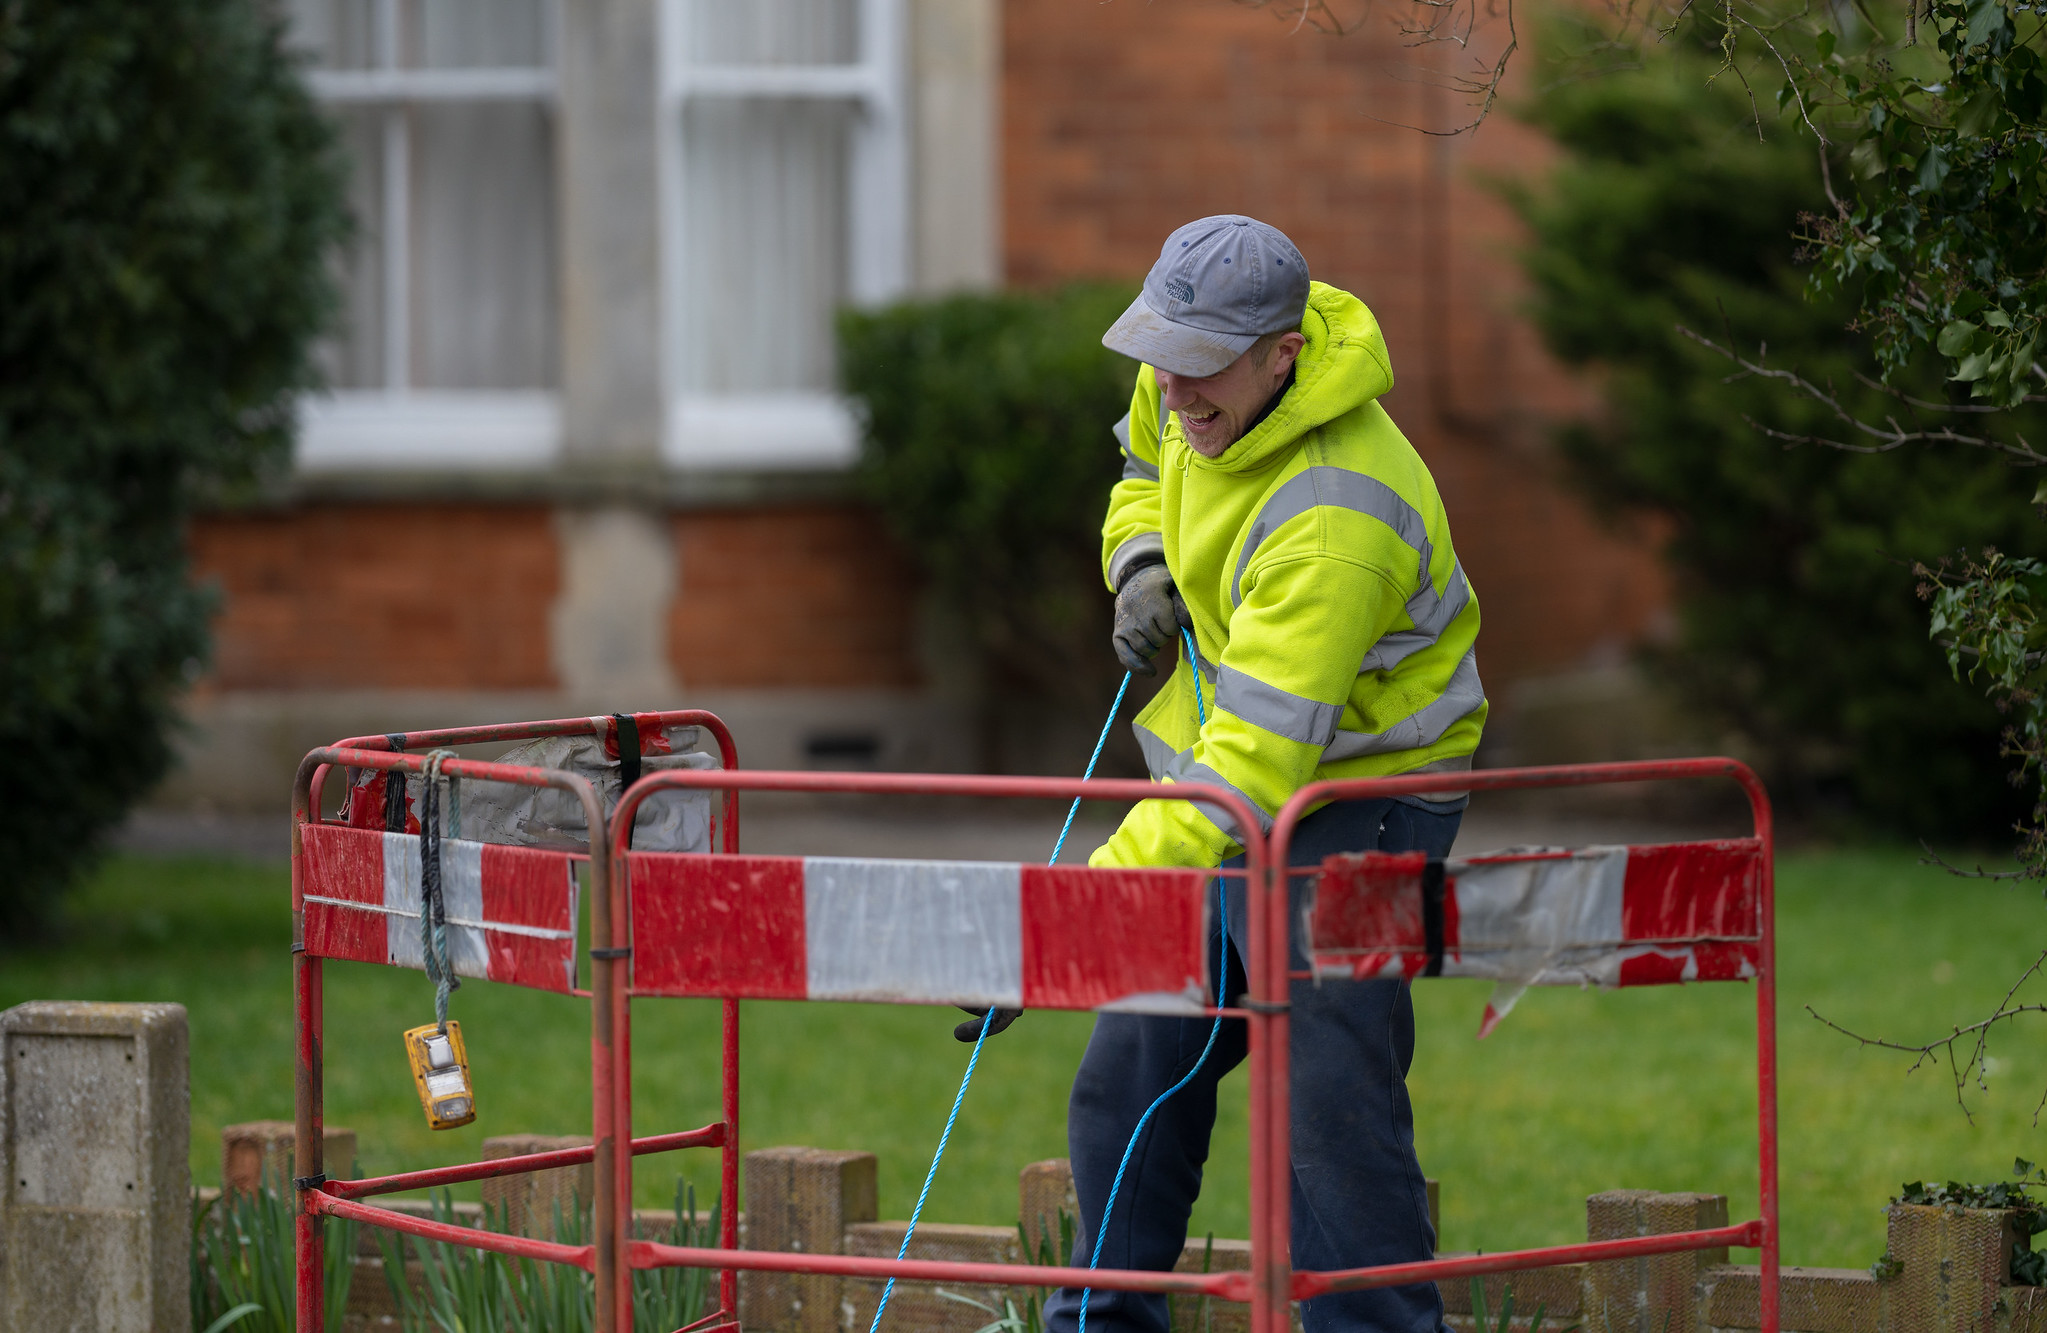 Cable Pulled Through - High Street (2 Mar 2021)